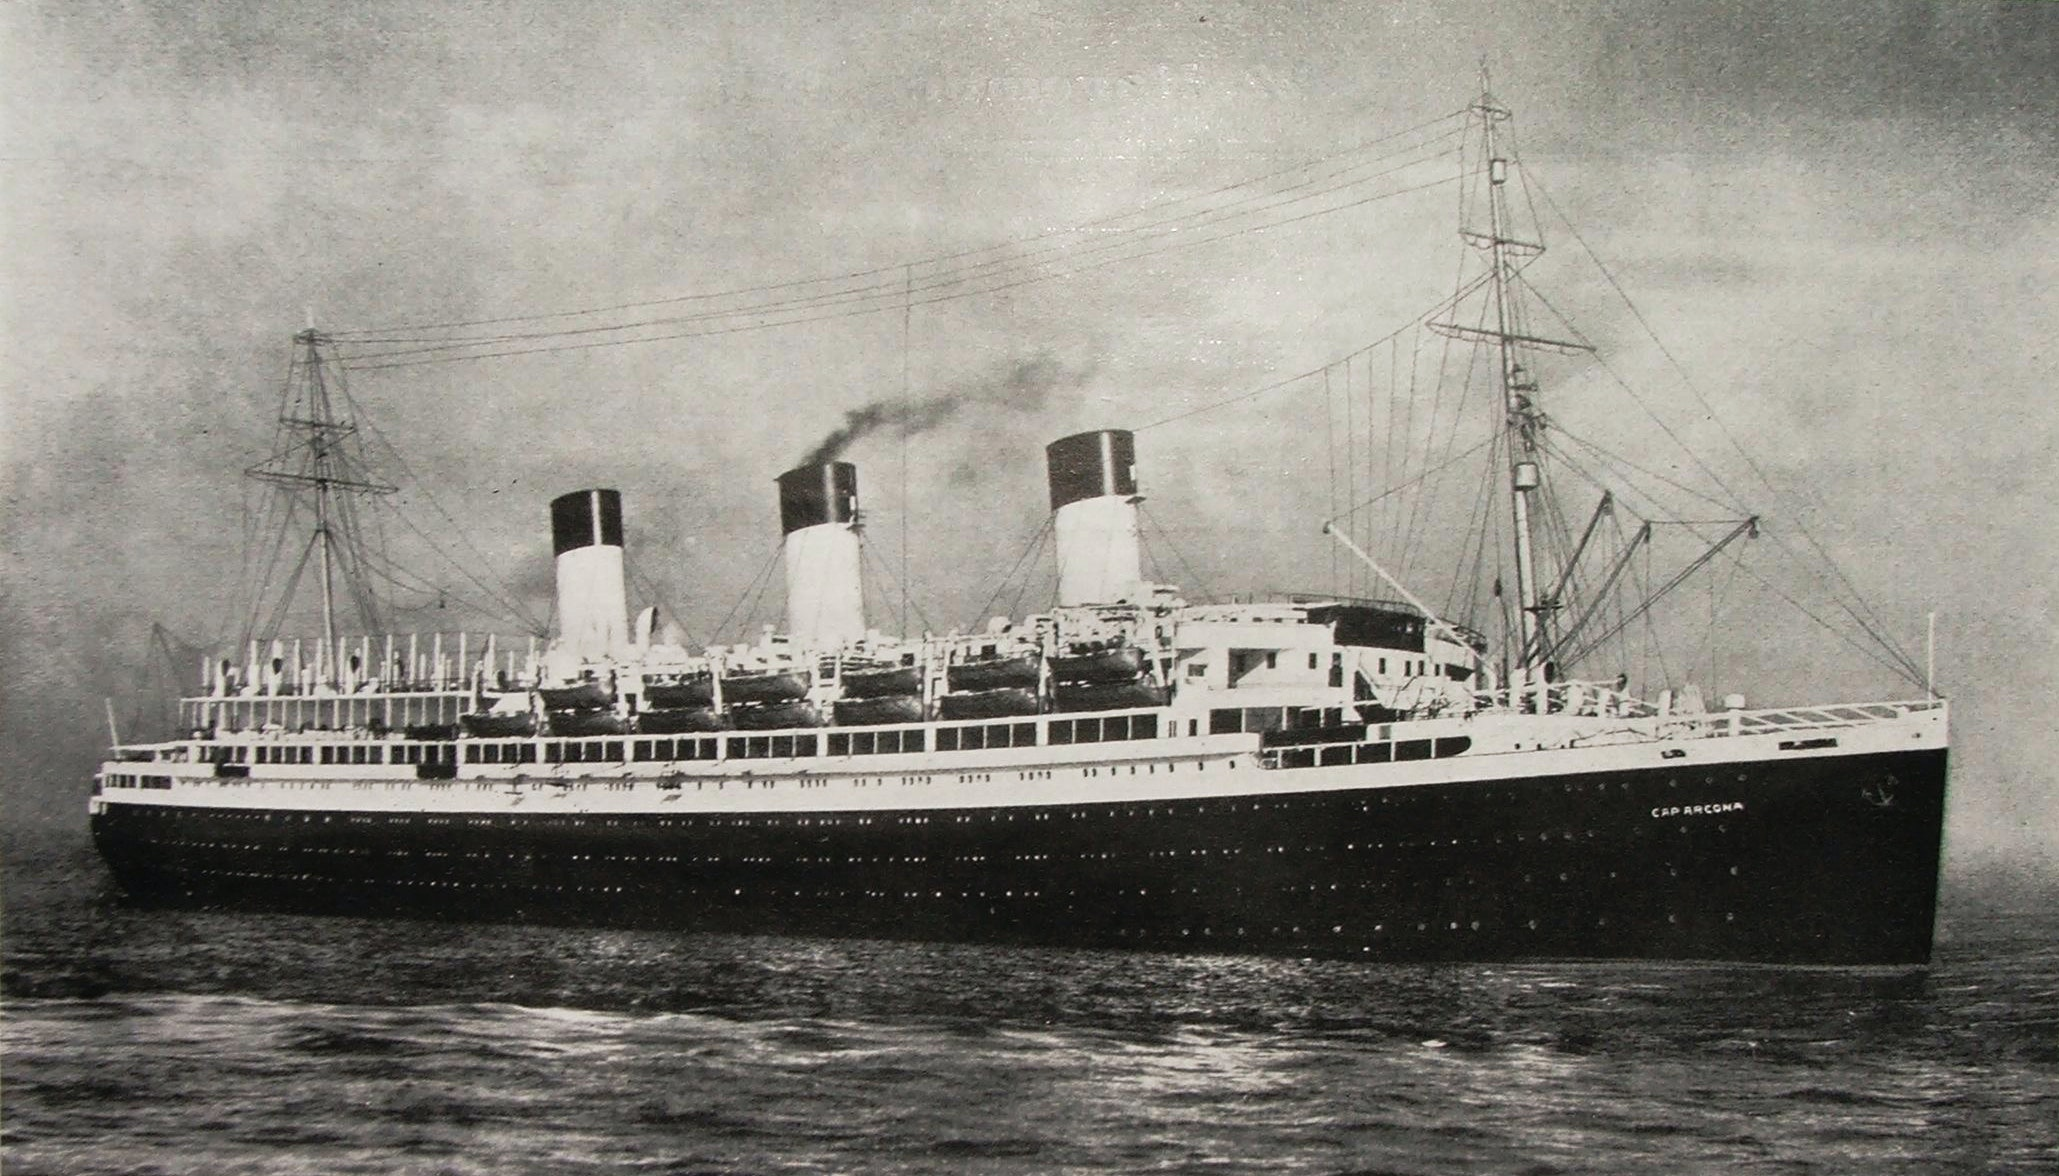 The Cap Arcona in 1927. Wikipedia